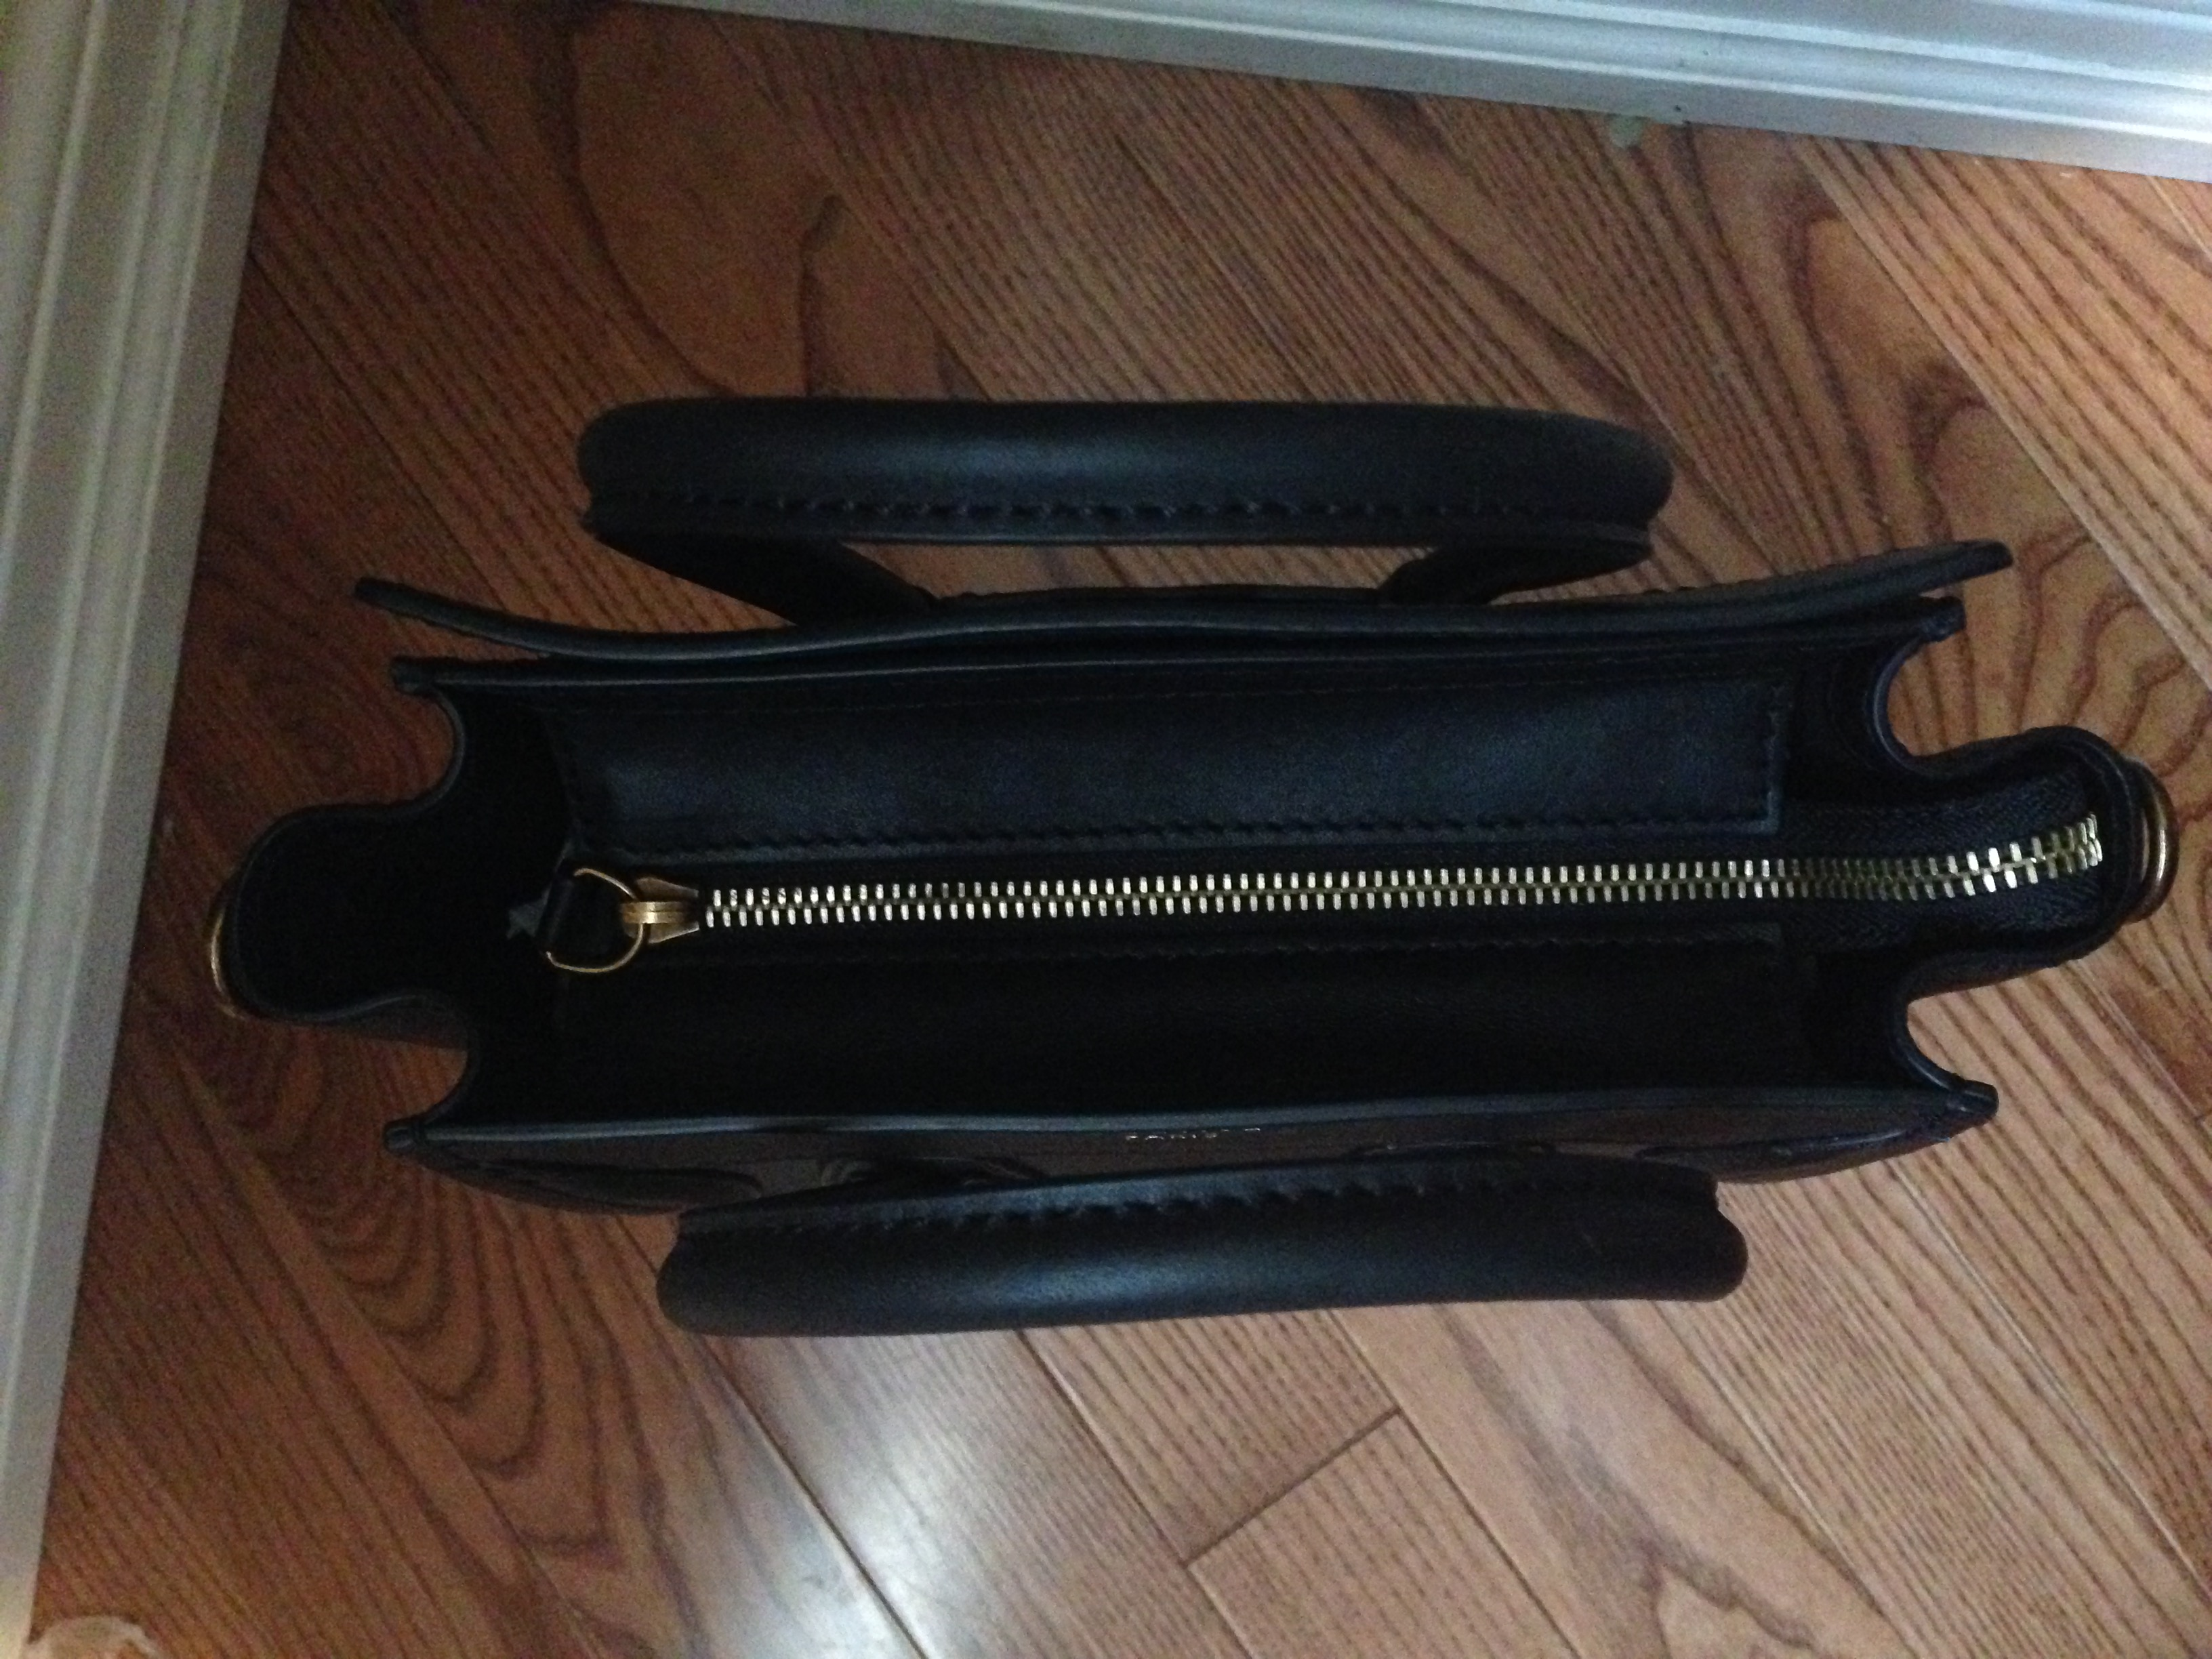 online replica bags - Celine �C Authentic & Replica Bags & Replica Handbags Reviews by ...